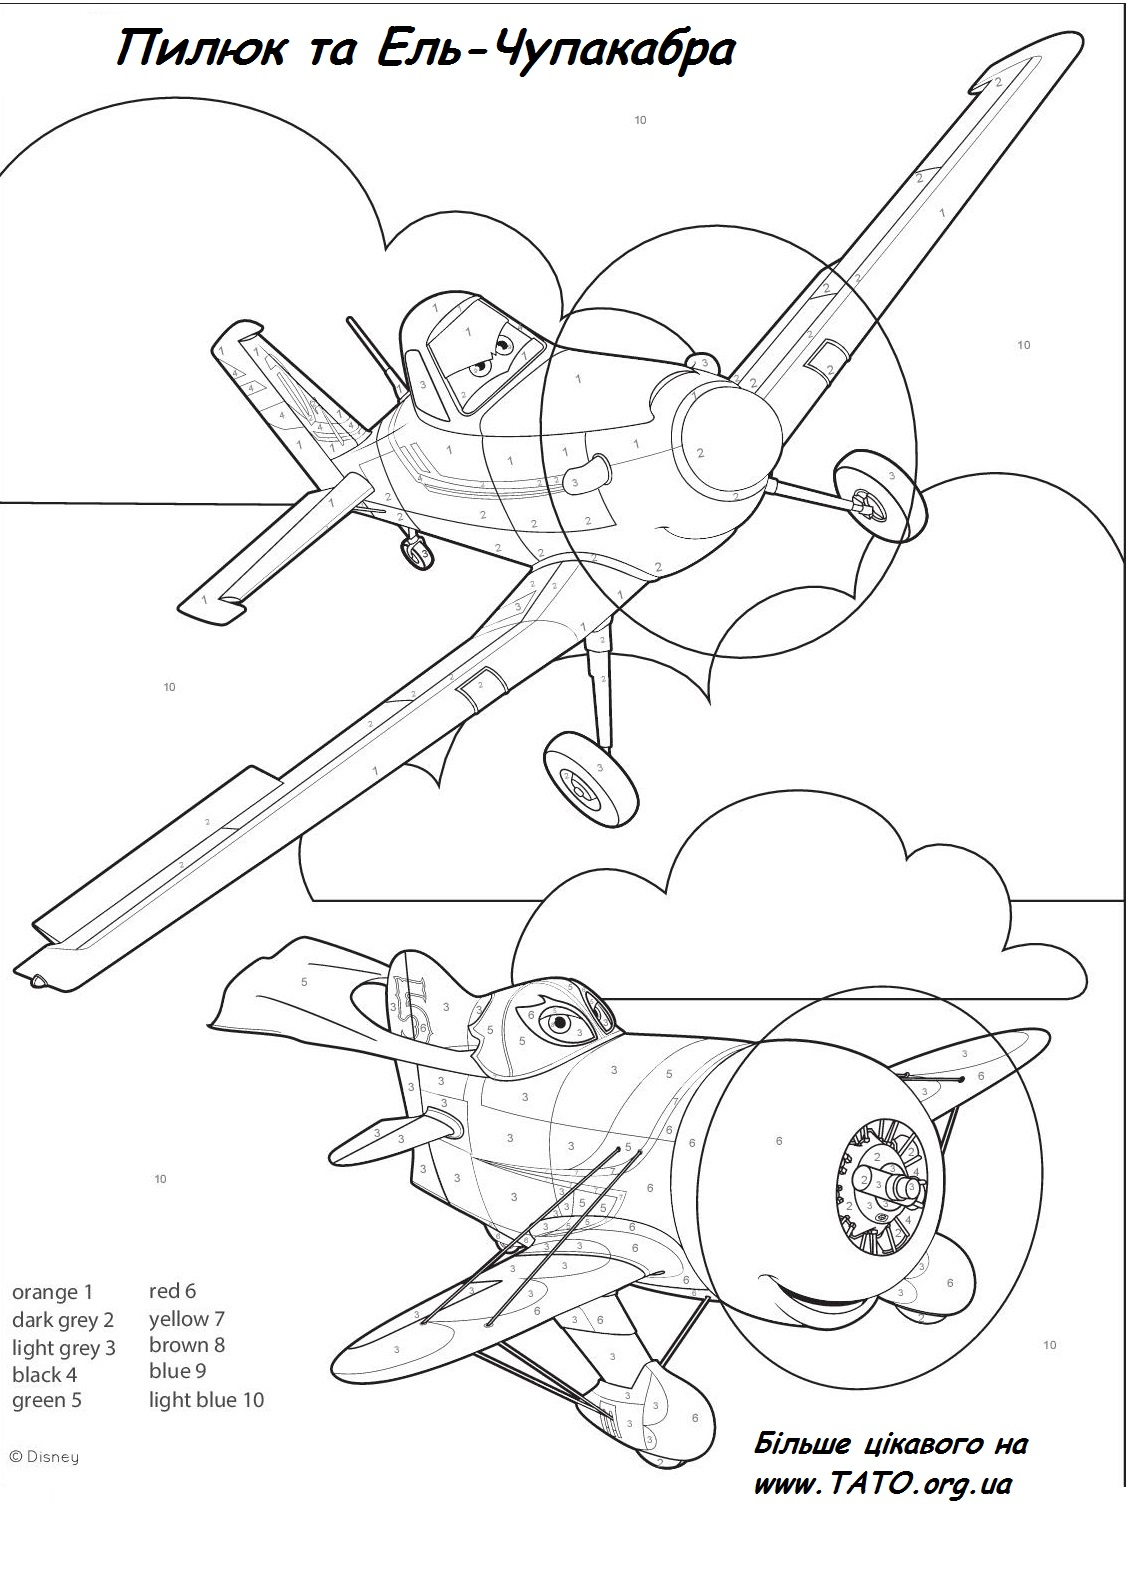 disney-planes-color-by-number-coloring-page-printable-0413_FDCOM